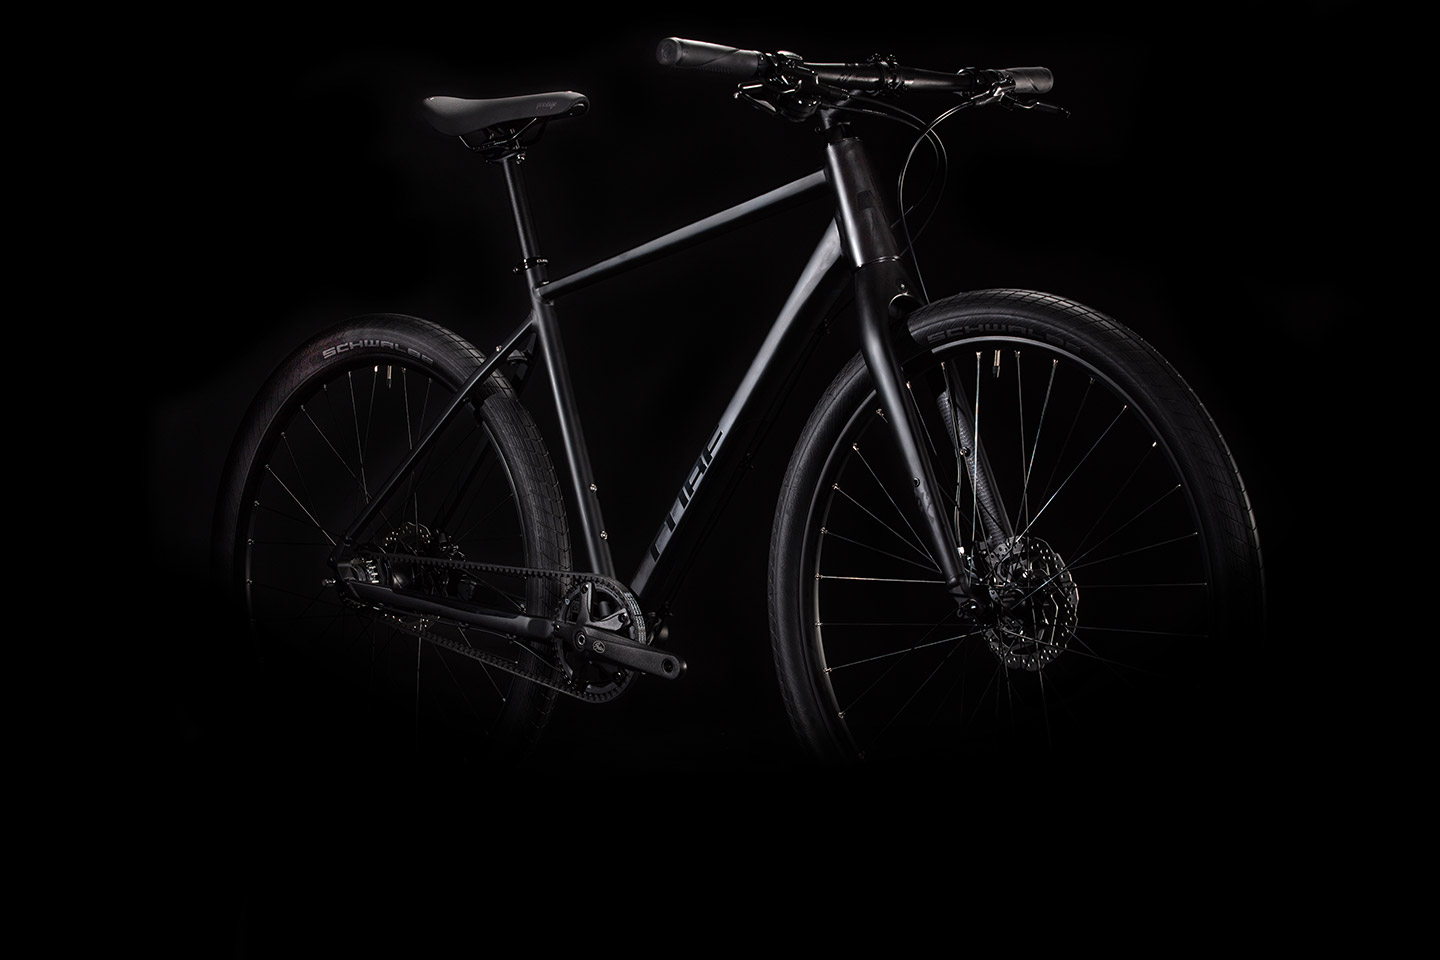 Black mountain bicycles sonos amp review